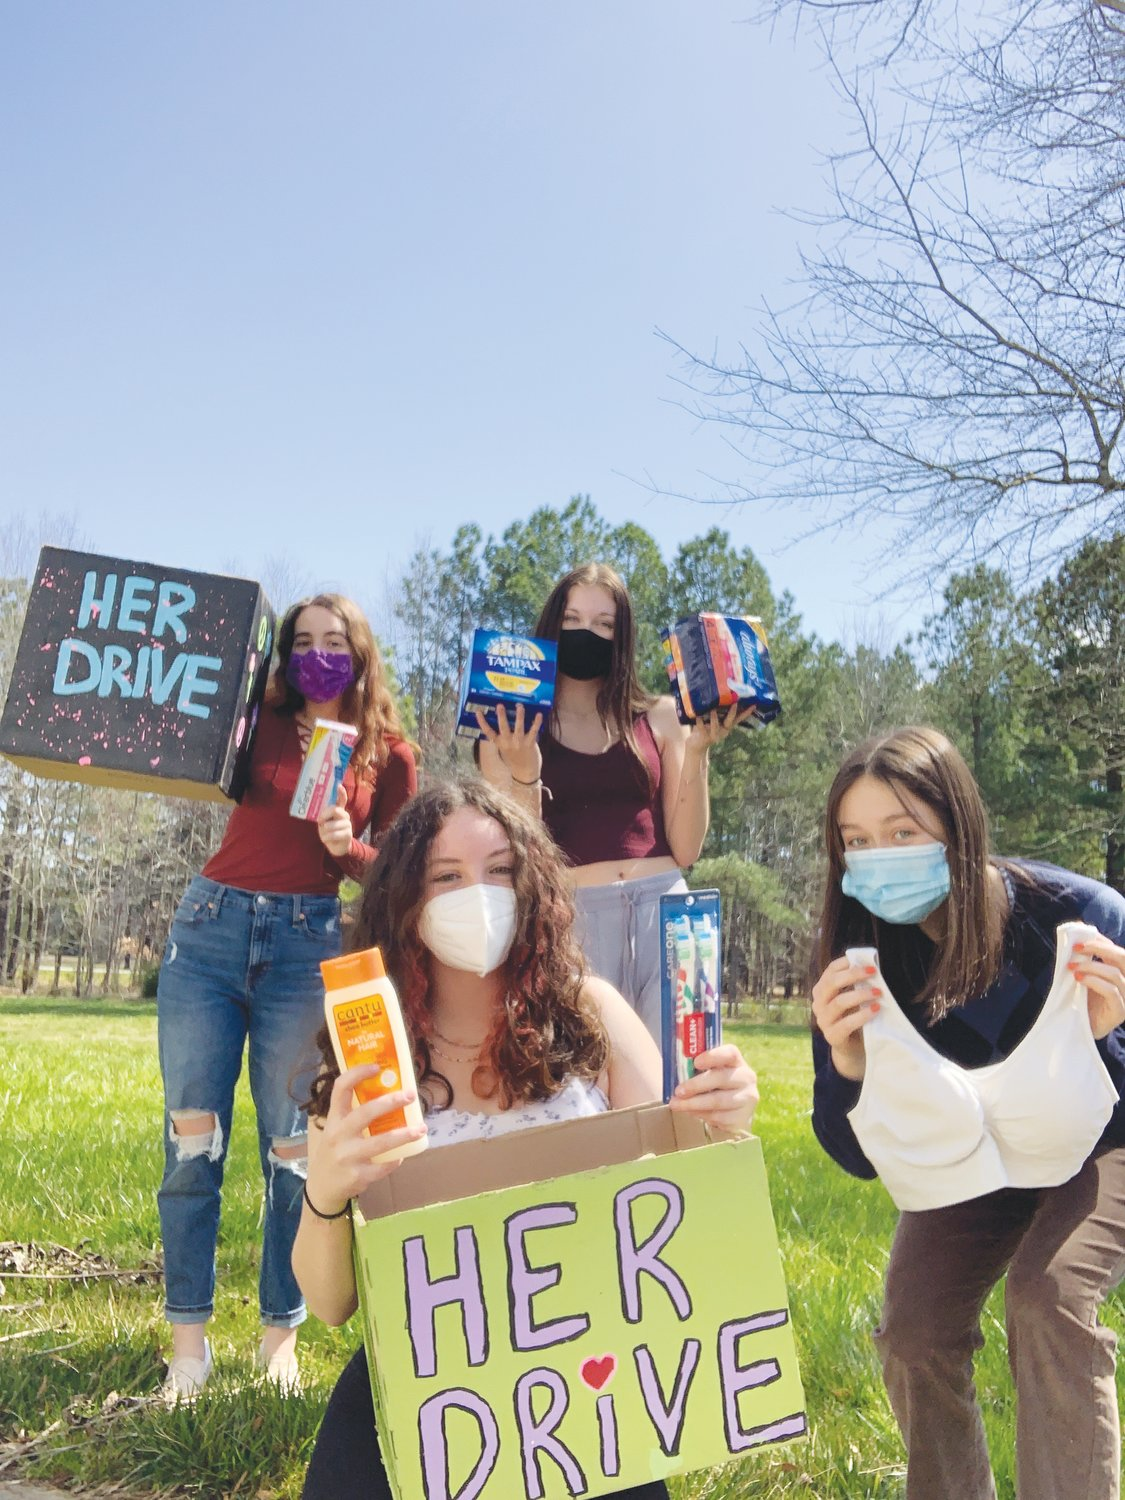 Annika Lowe (bottom right) began a donation drive in Chatham to collect menstrual care products with her friends, Angelina Parker-Lewis (top left), Emma Dickerson (top right) and Geneva Yarger-Woolford.